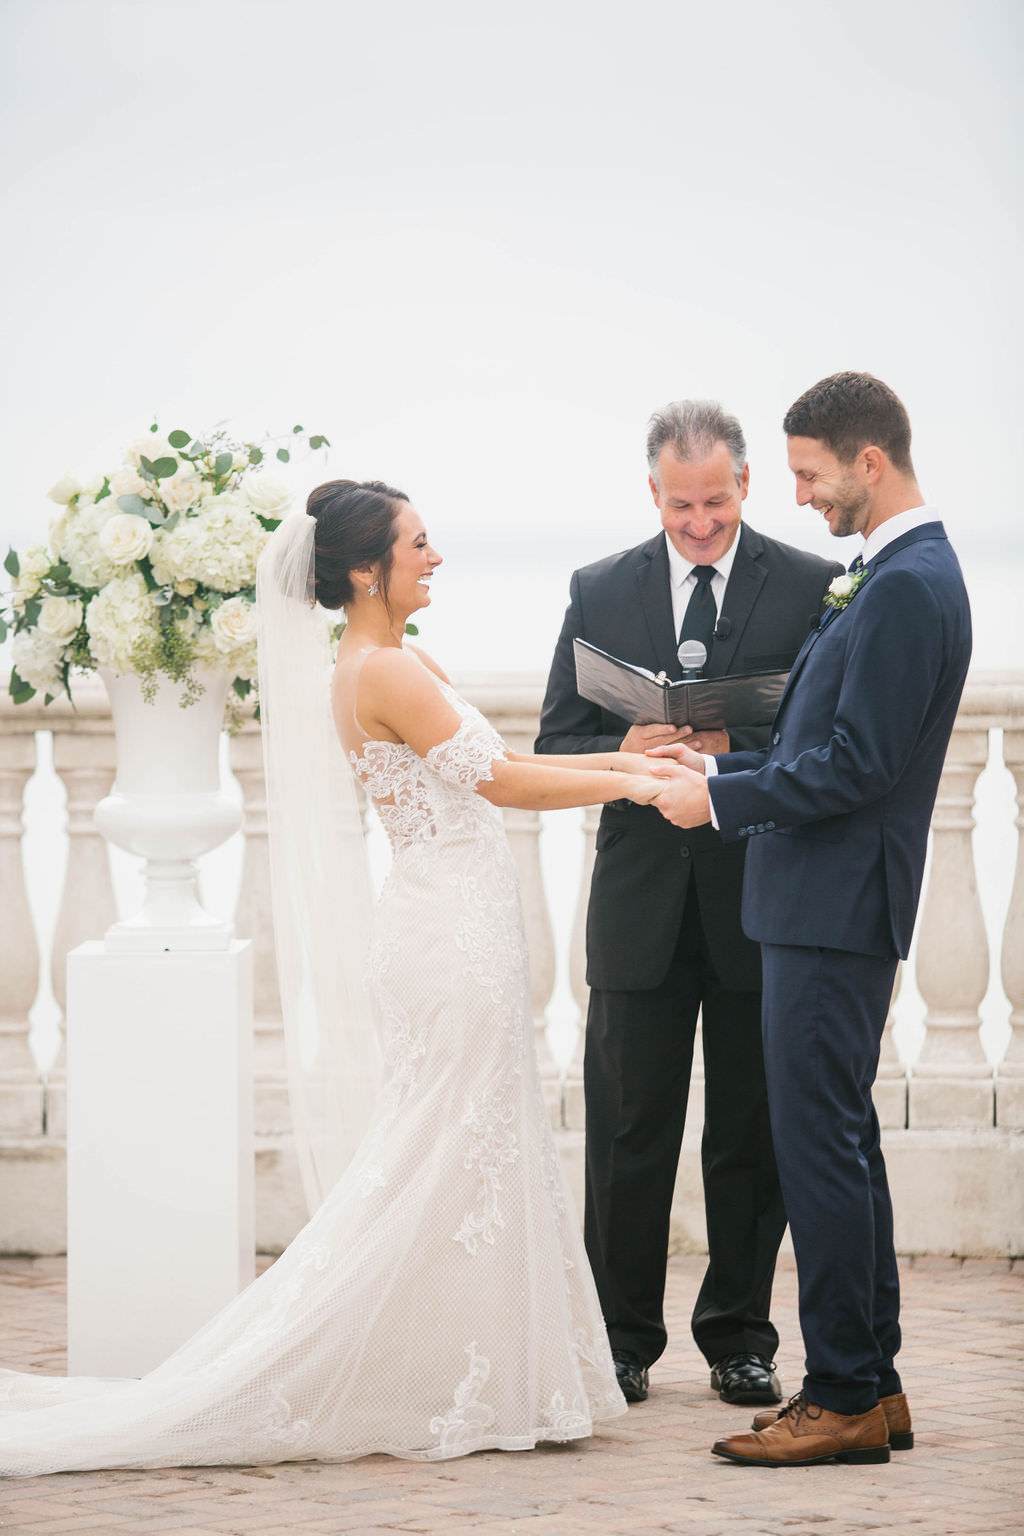 Florida Bride and Groom Exchanging Wedding Vows During Ceremony Portrait